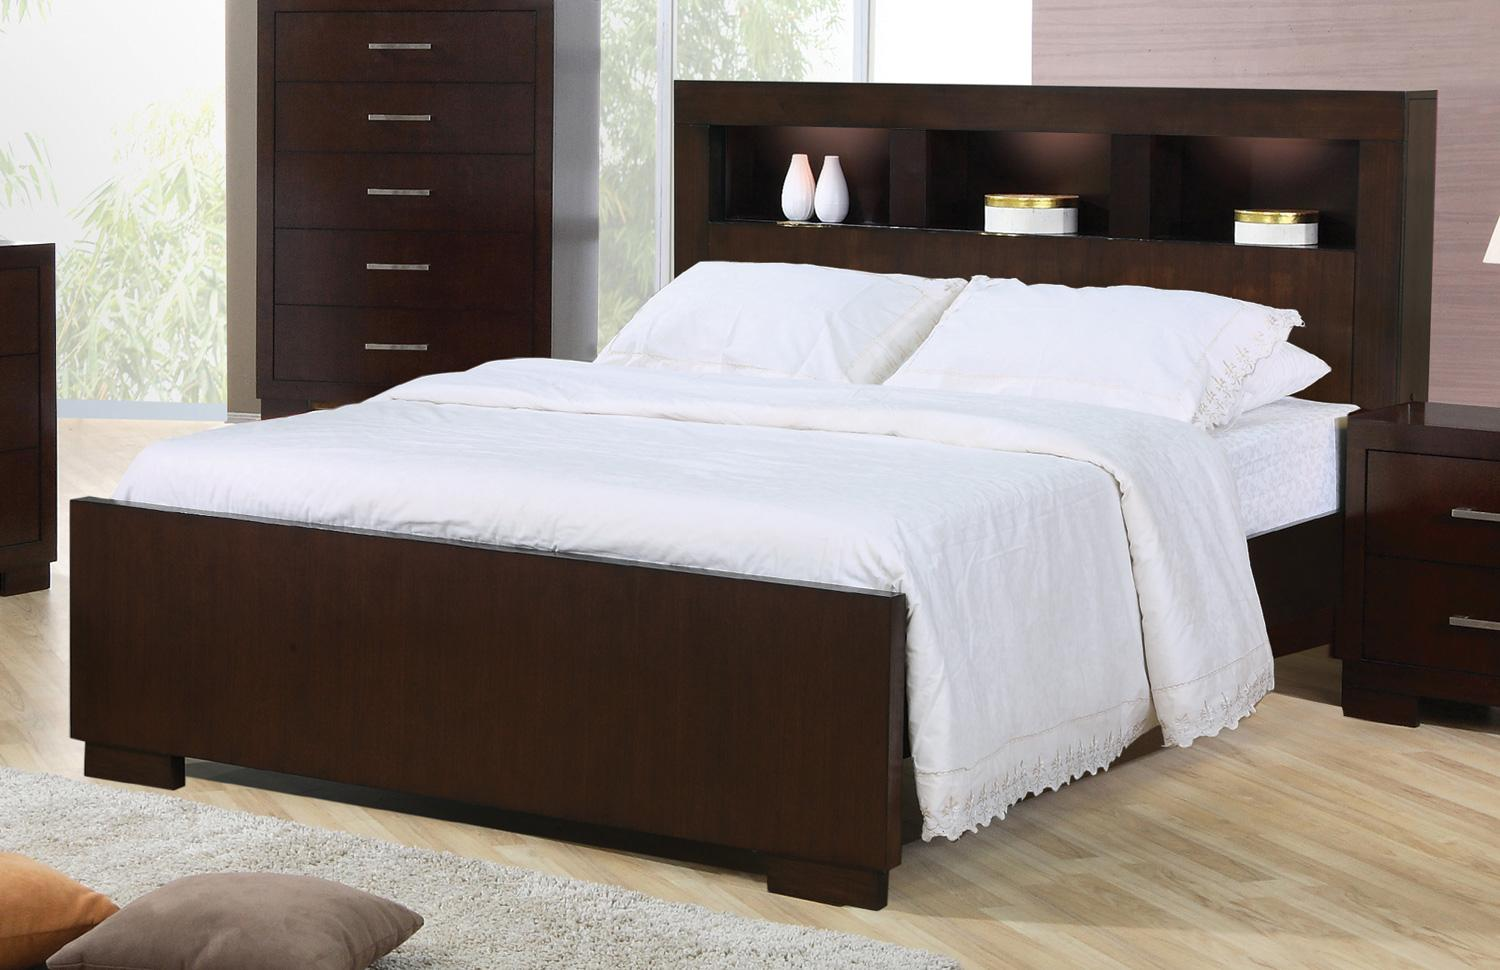 Coaster Jessica 200719kw California King Contemporary Bed With Storage Headboard And Built In Lighting Northeast Factory Direct Bookcase Beds